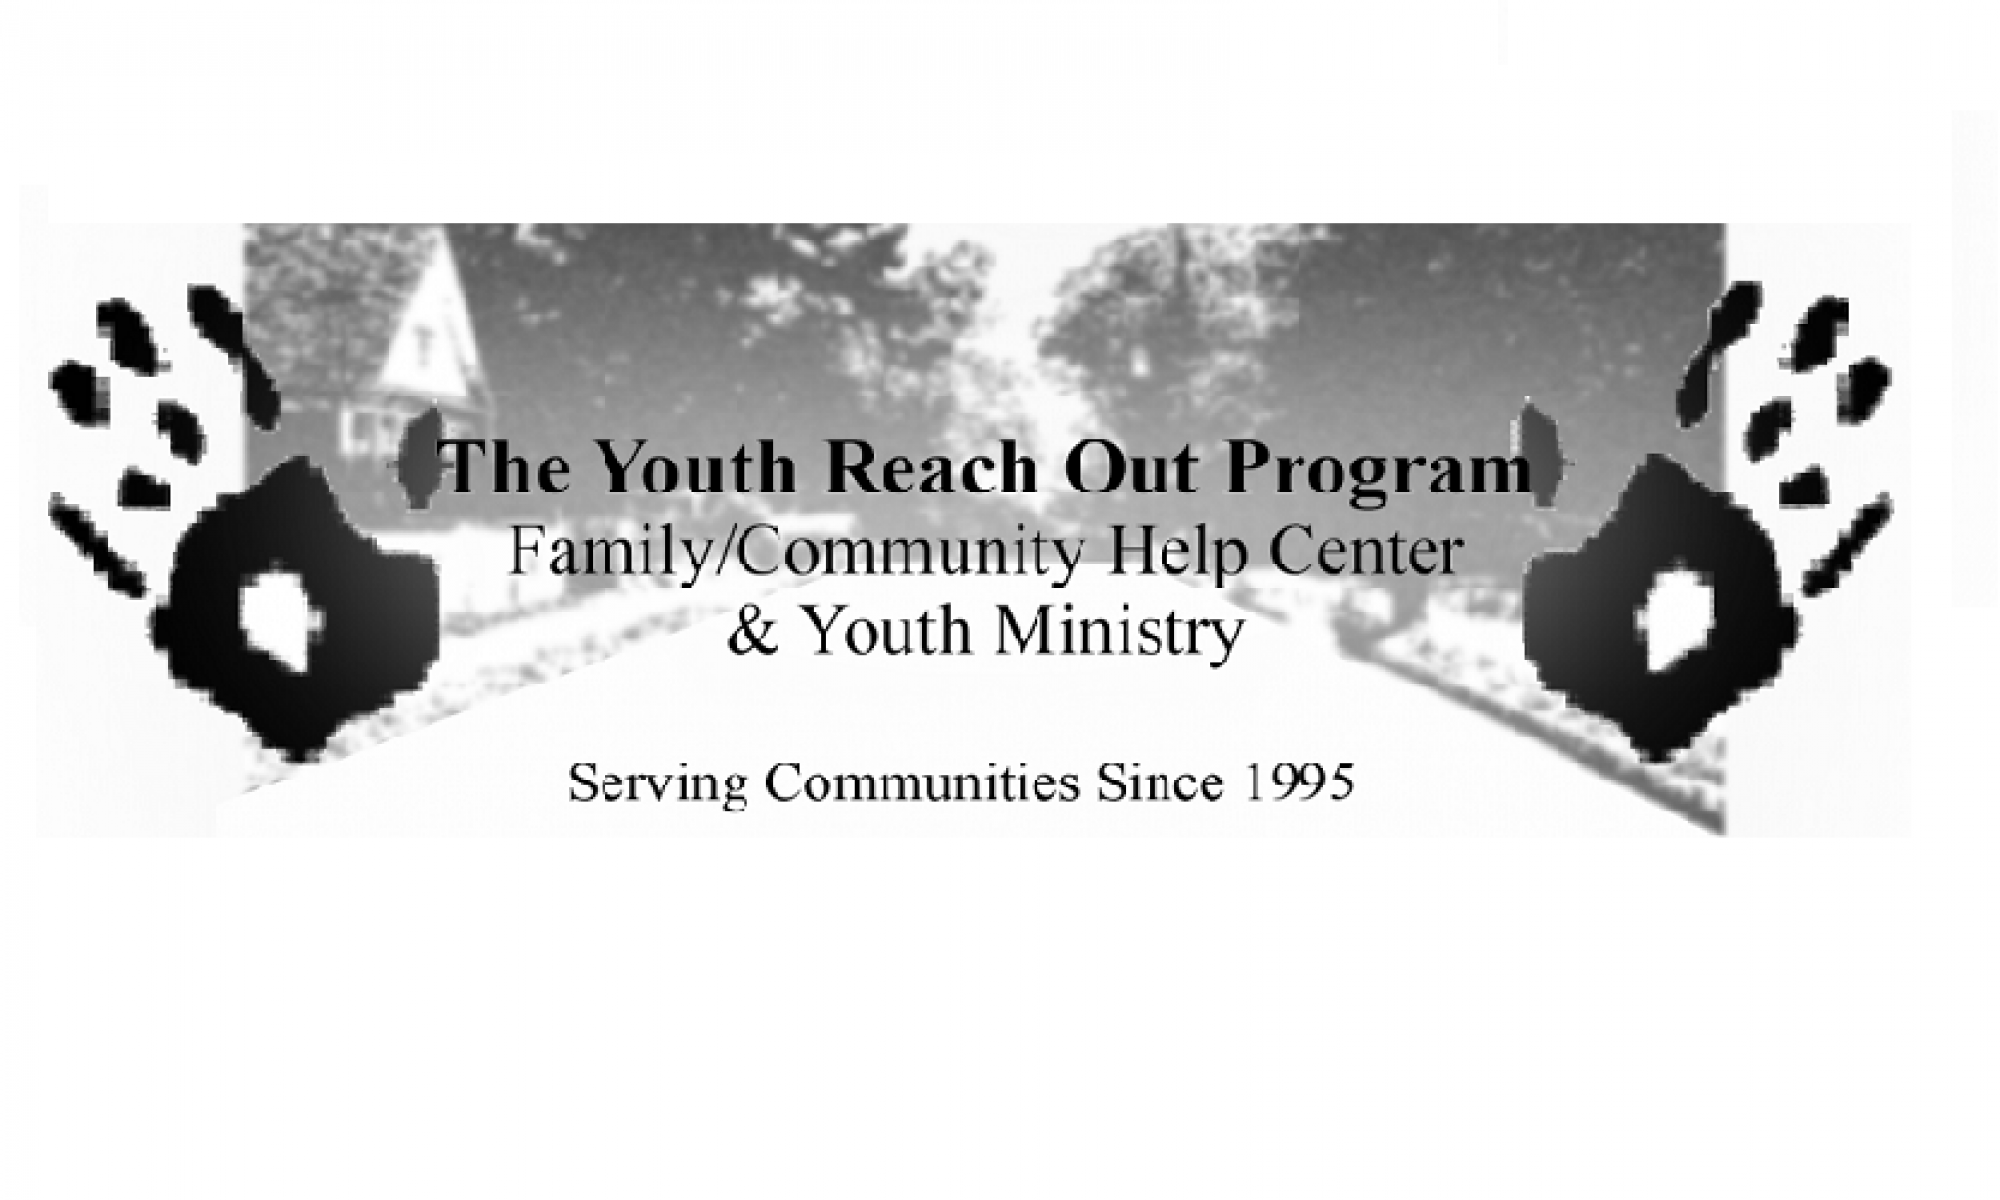 The Youth Reach Out Program